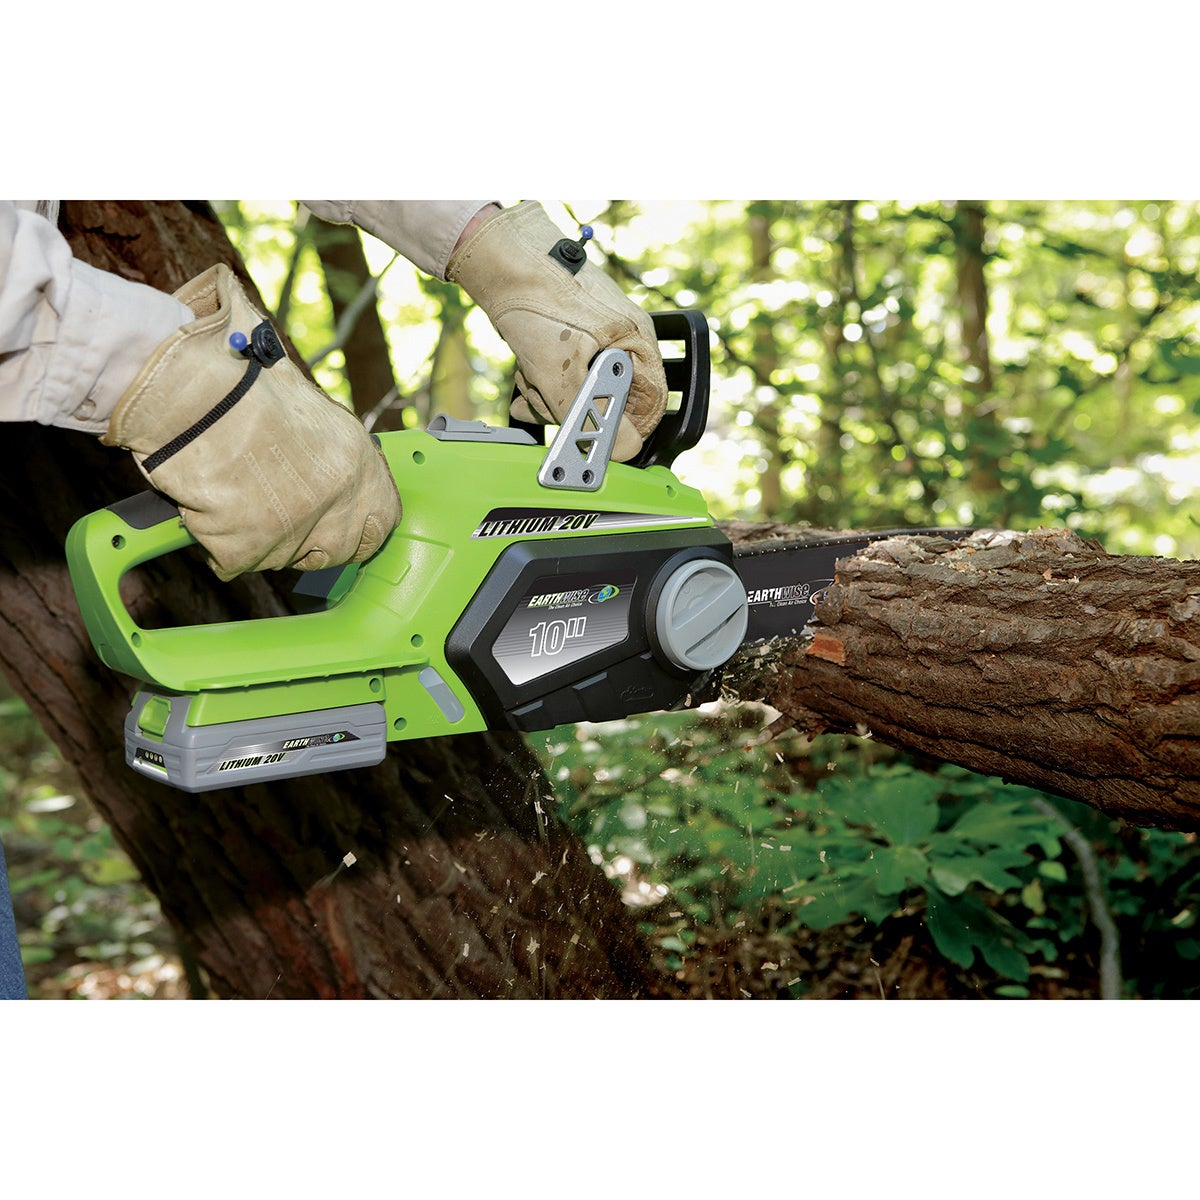 Earthwise 10 inch cordless 20 volt lithium ion chain saw free earthwise 10 inch cordless 20 volt lithium ion chain saw free shipping today overstock 16848944 greentooth Images